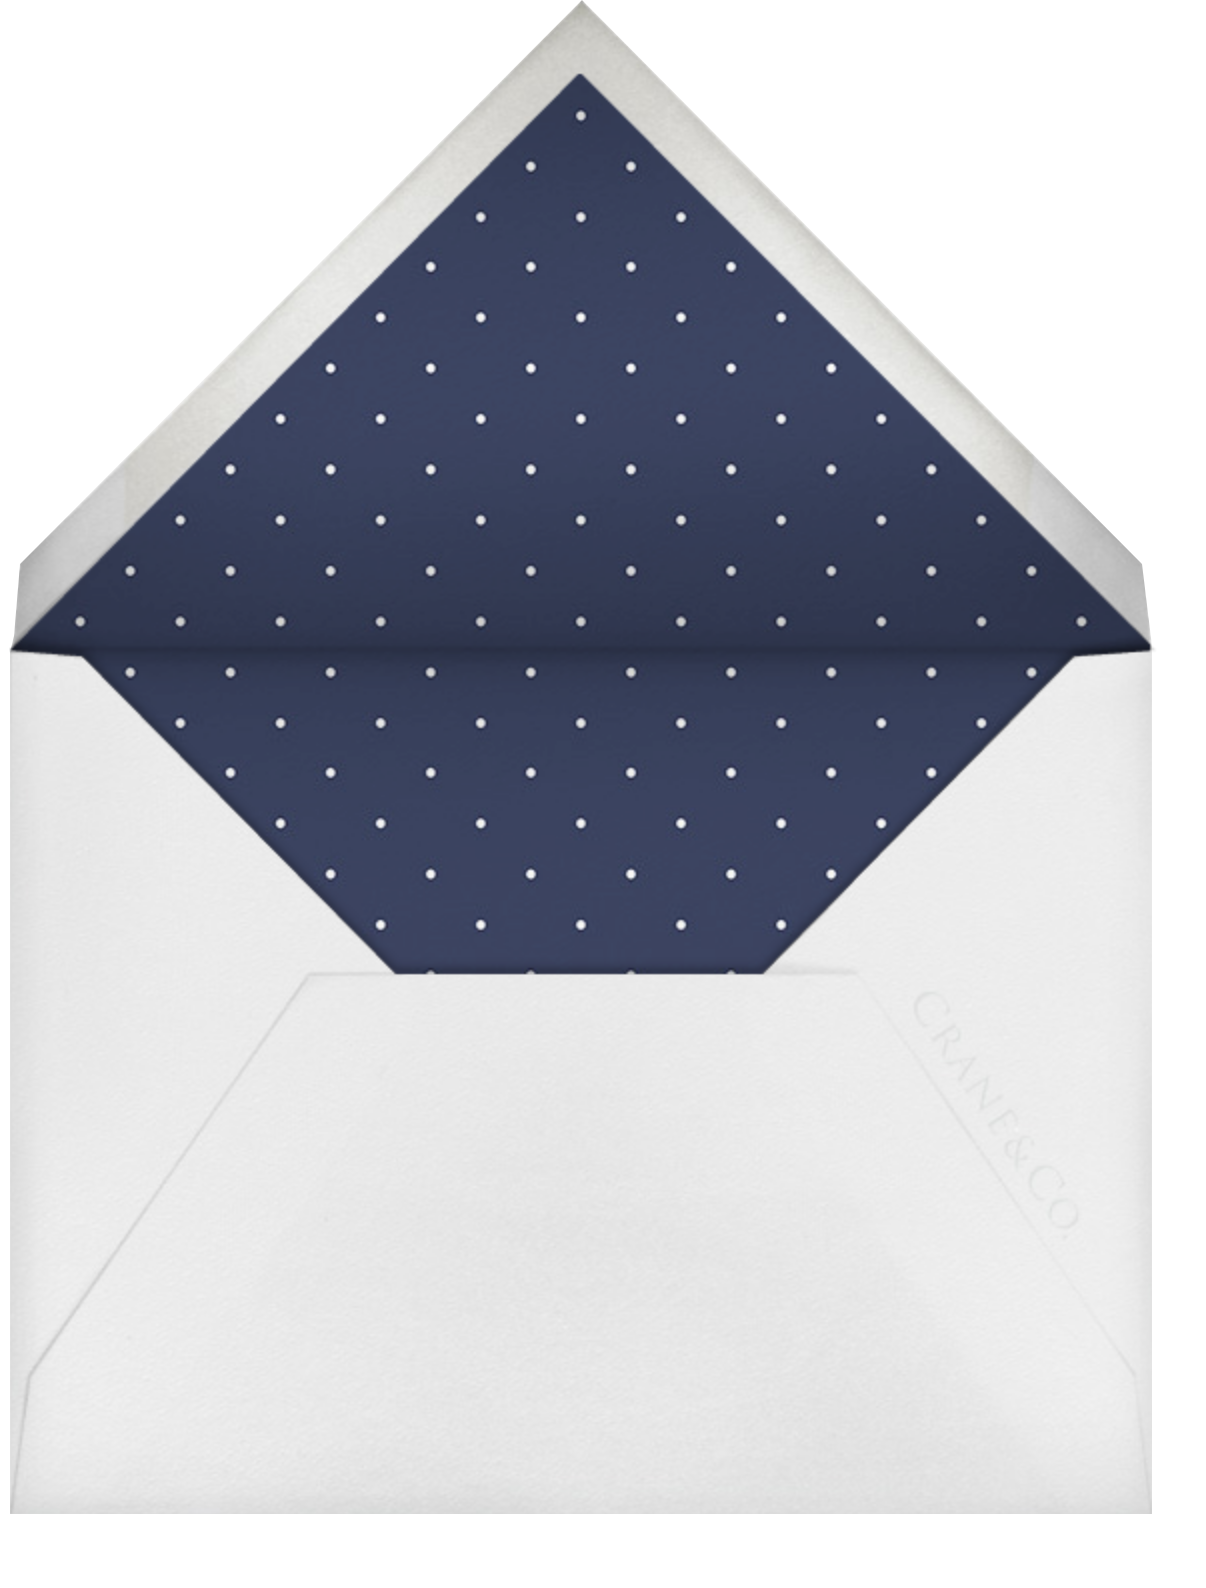 Double Loop Frame I (Save the Date) - Navy - Paperless Post - Classic  - envelope back